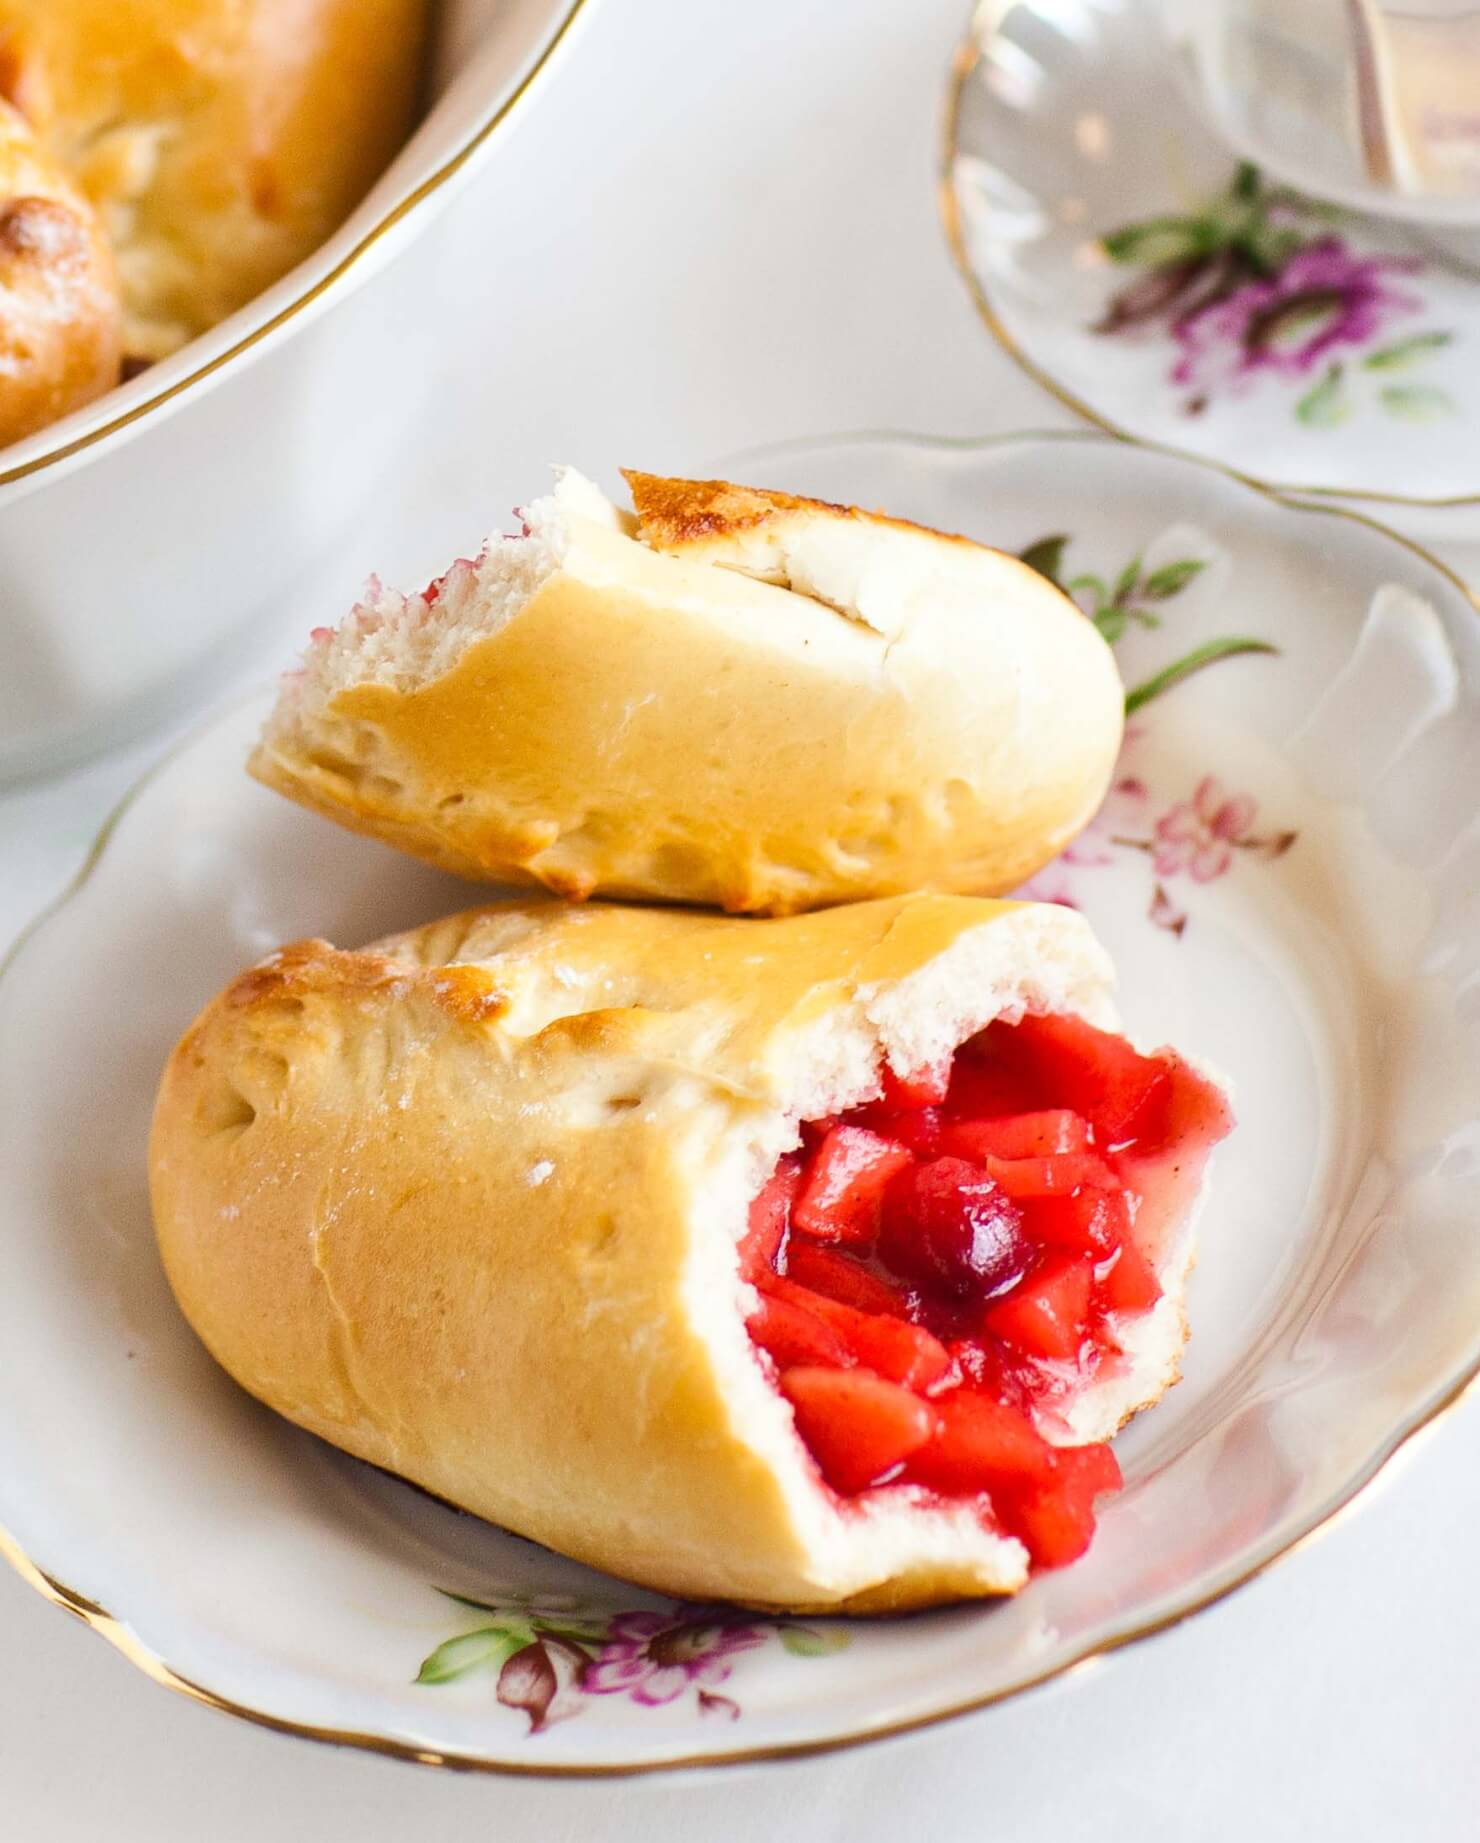 Apple Piroshki with Cranberry